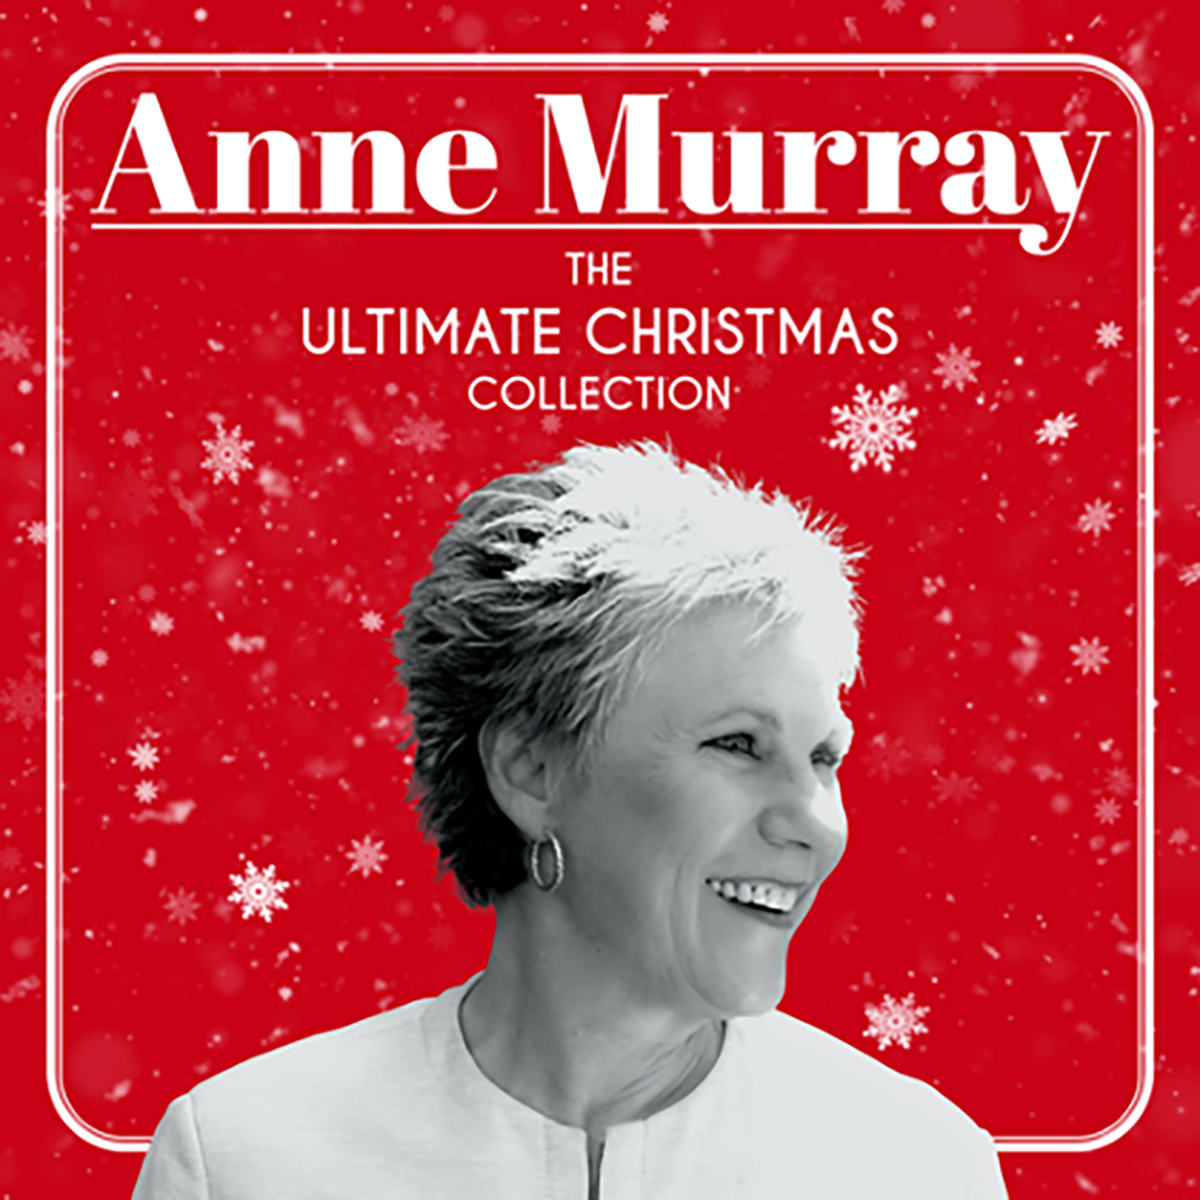 Anne Murray Gifts Fans With The Ultimate Christmas Collection